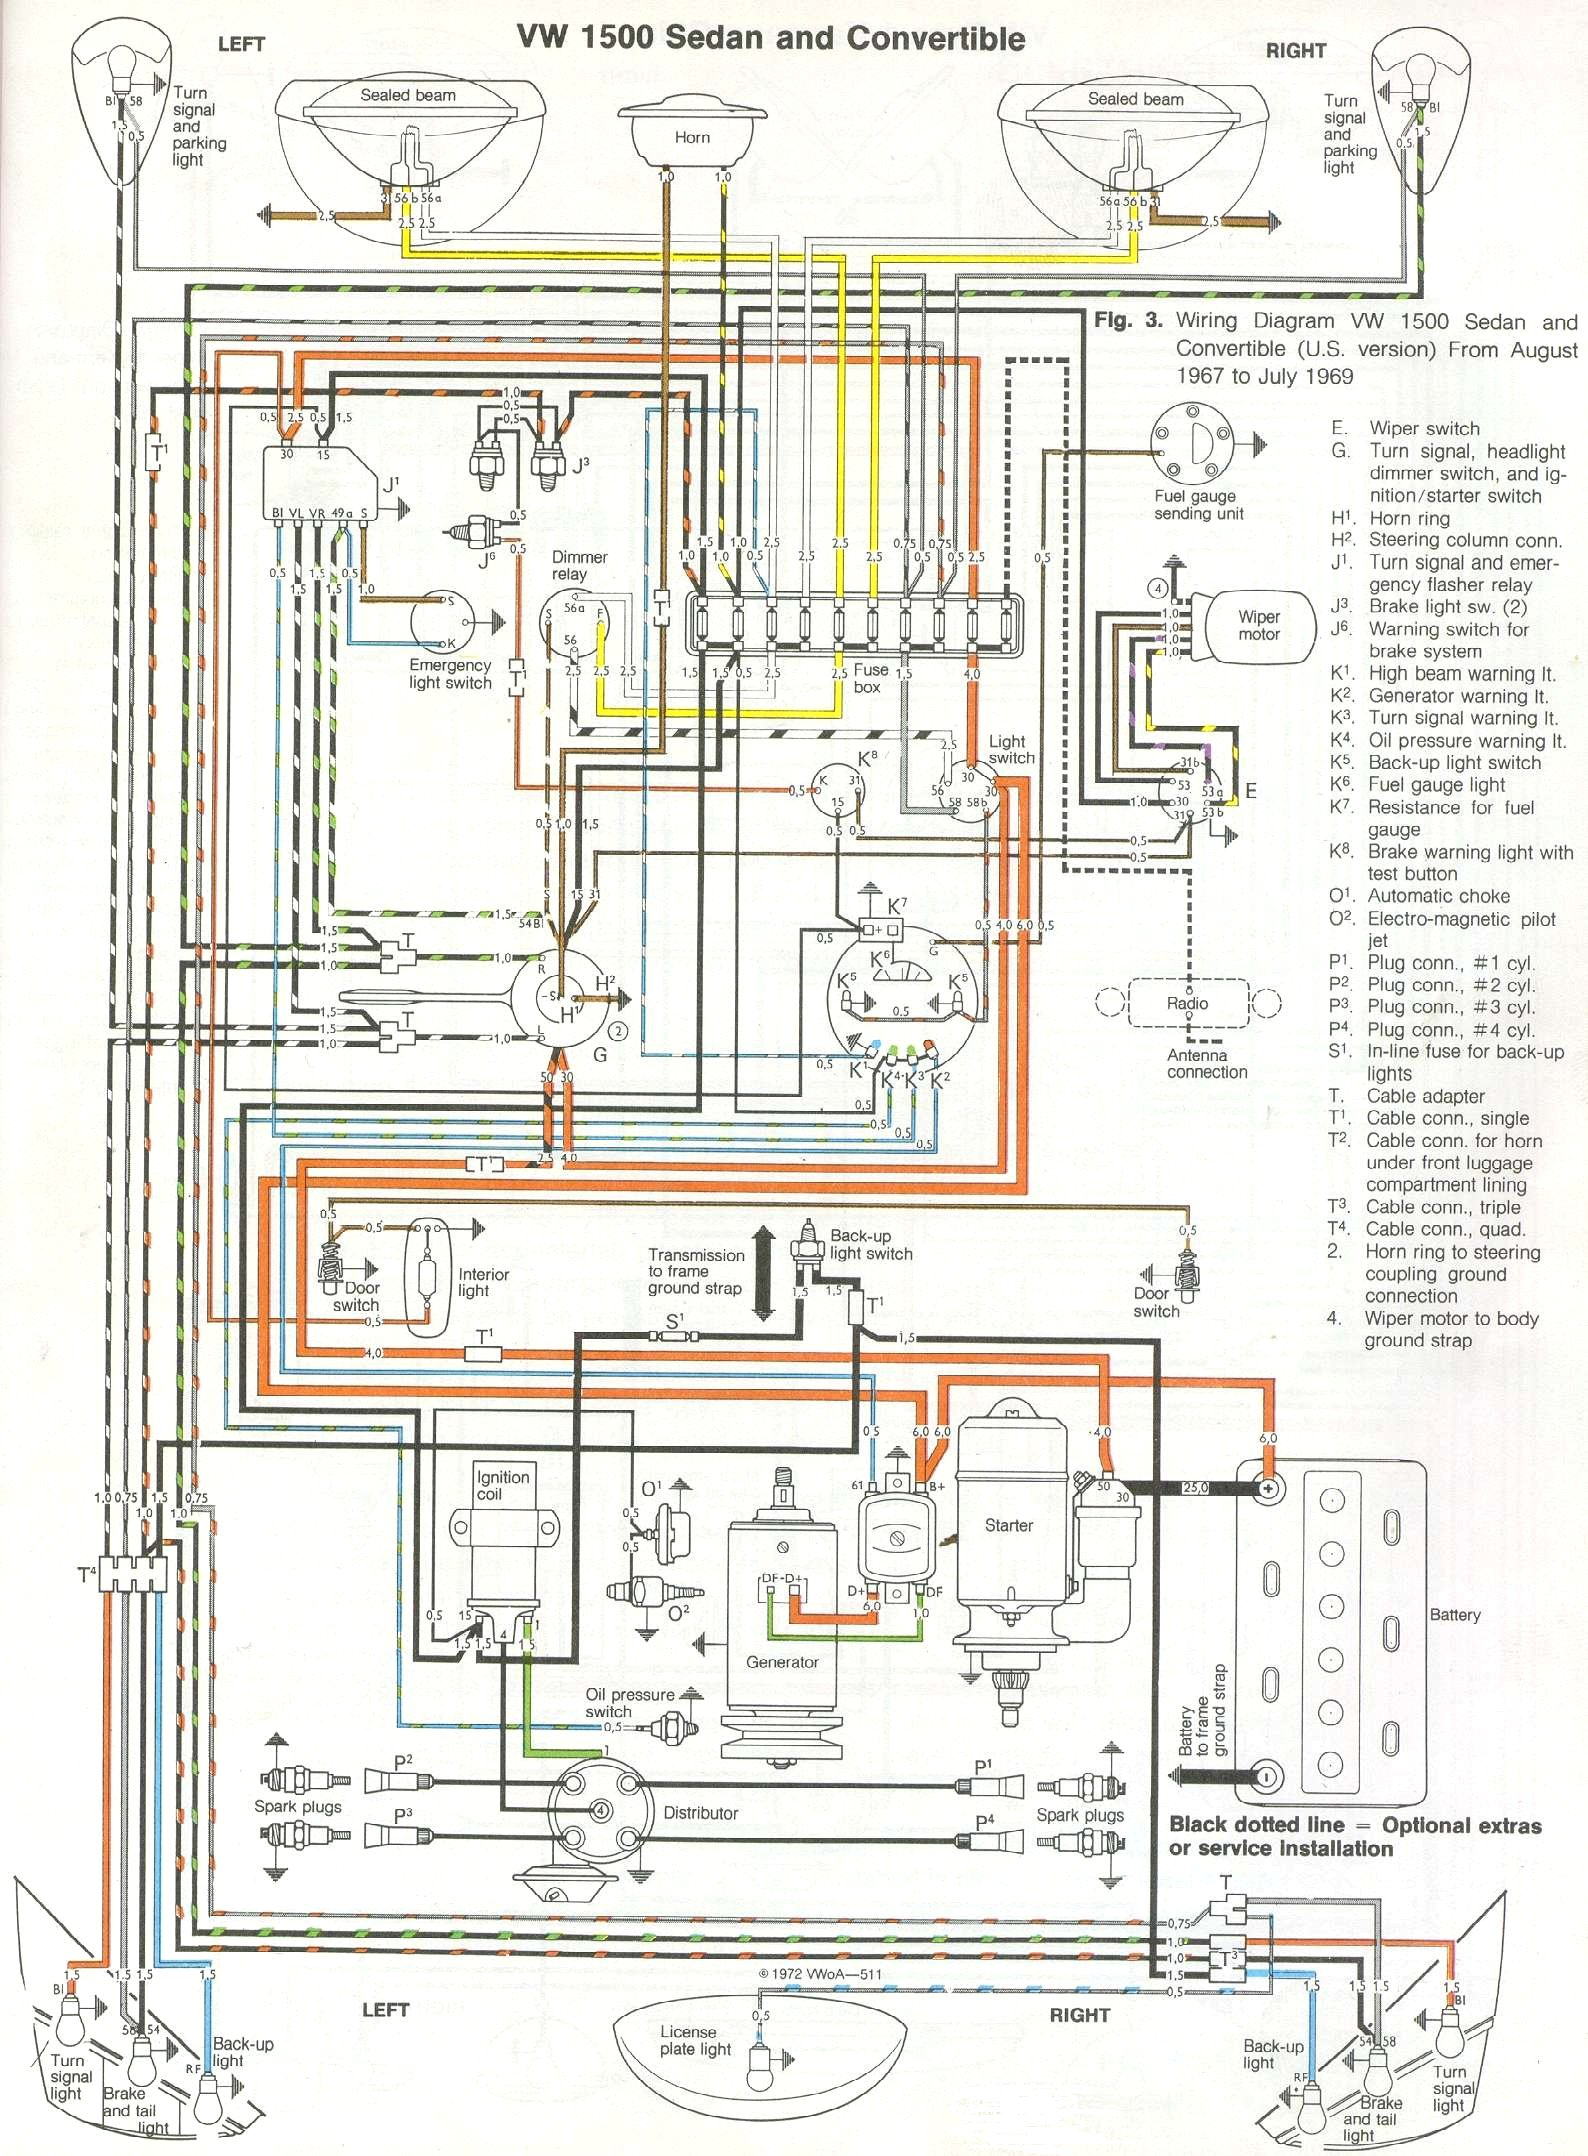 bug_6869 thesamba com type 1 wiring diagrams on 1974 vw beetle wiring diagram